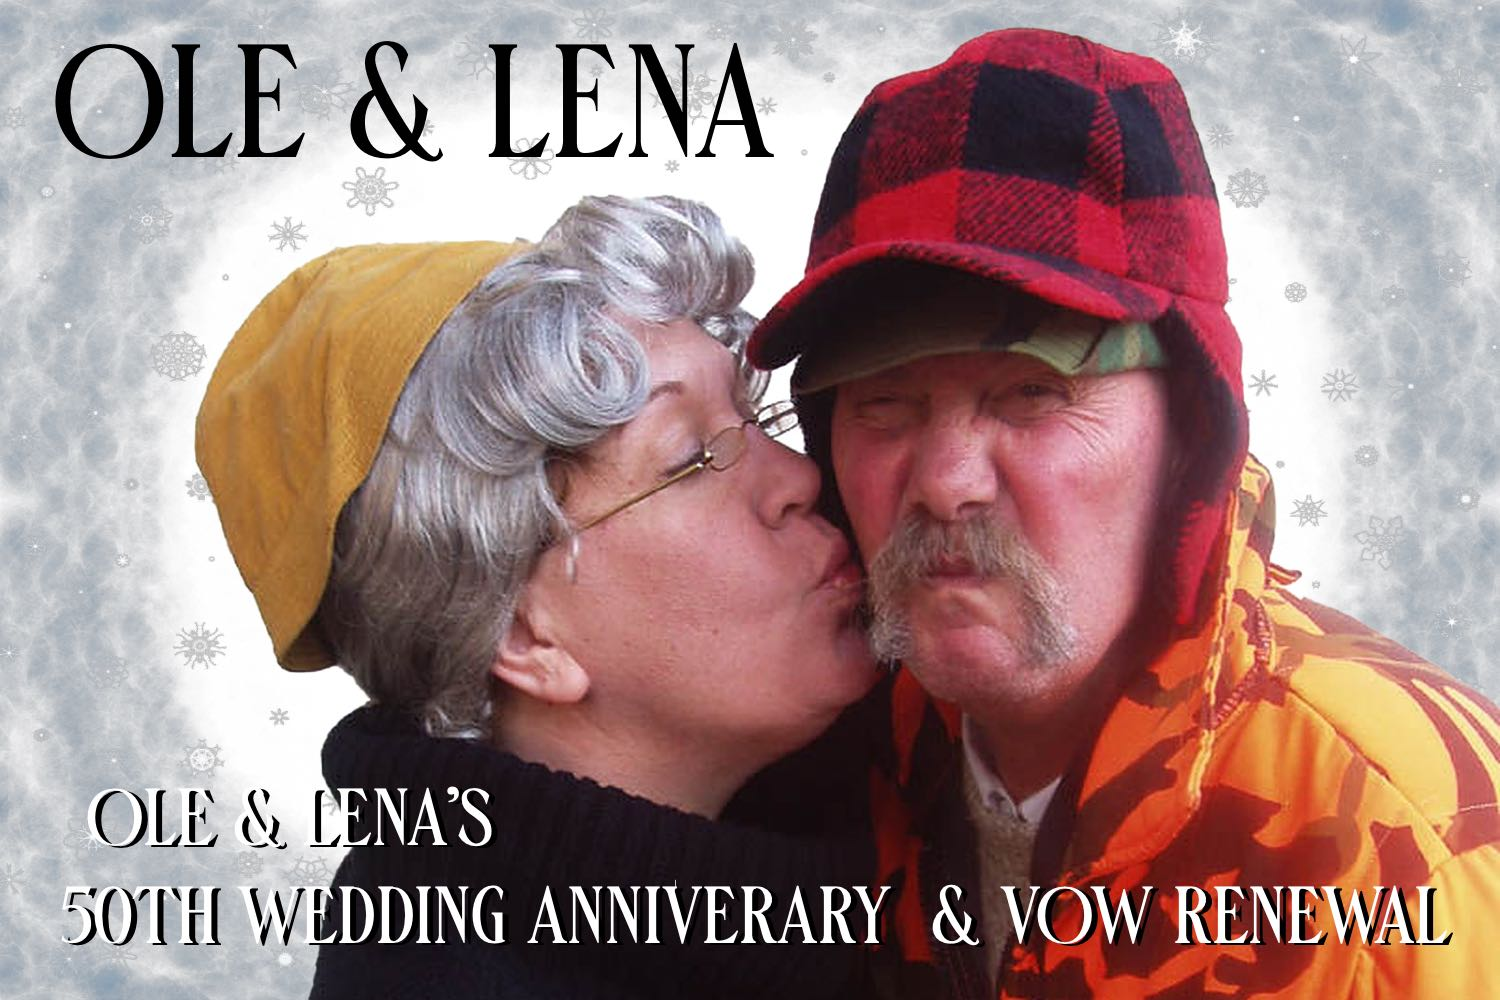 Ole & Lena's 50th Wedding Anniversary